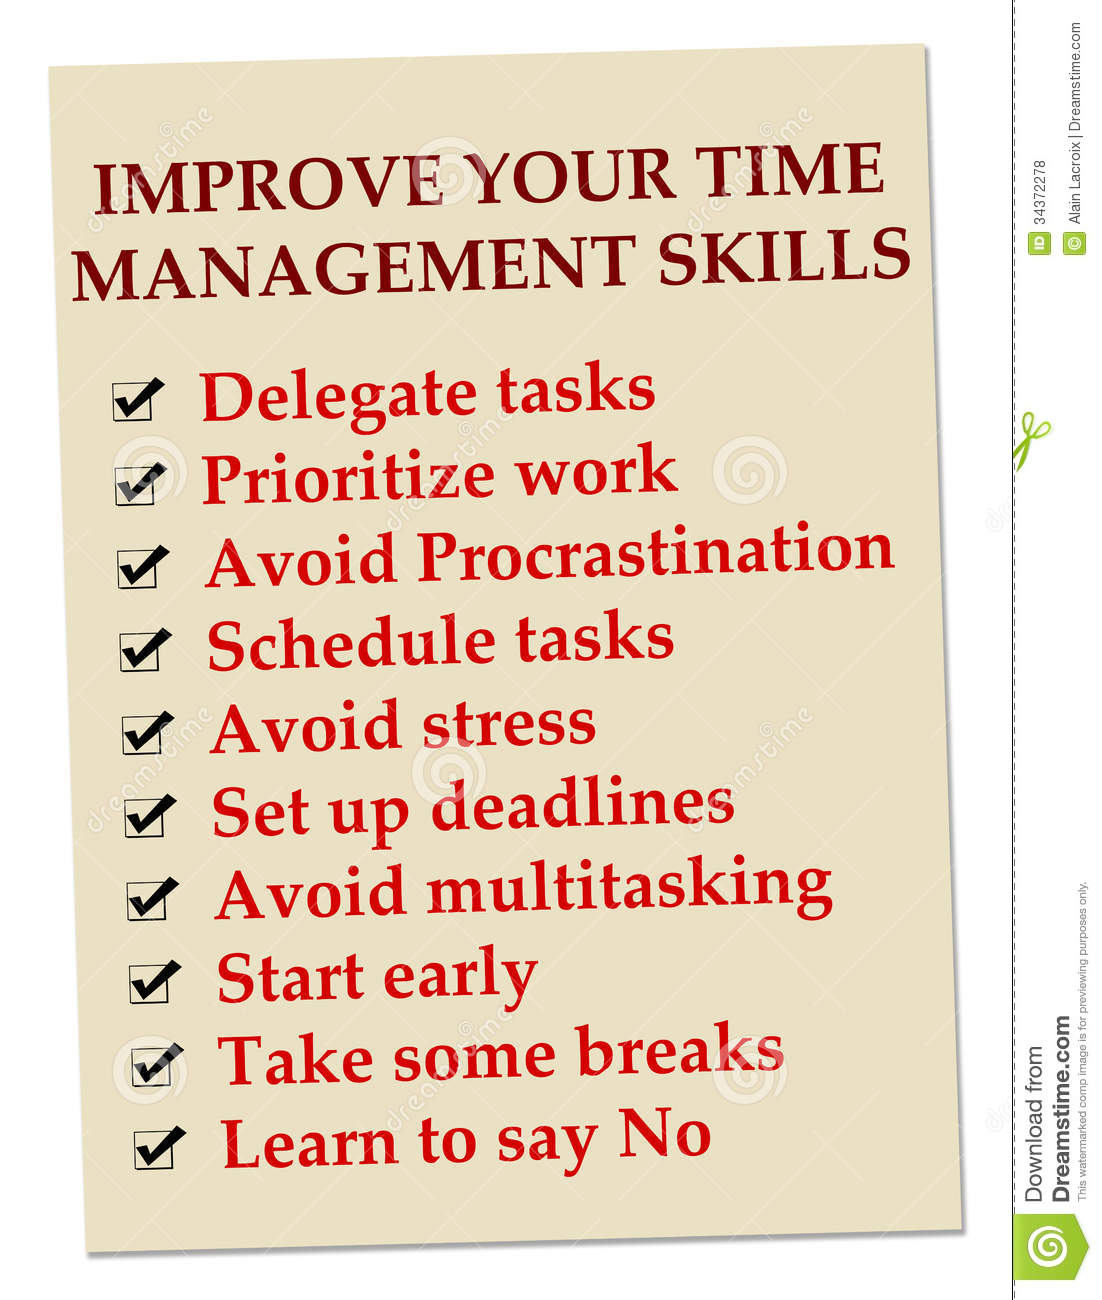 Time Management Royalty Free Stock Photos - Image: 34372278